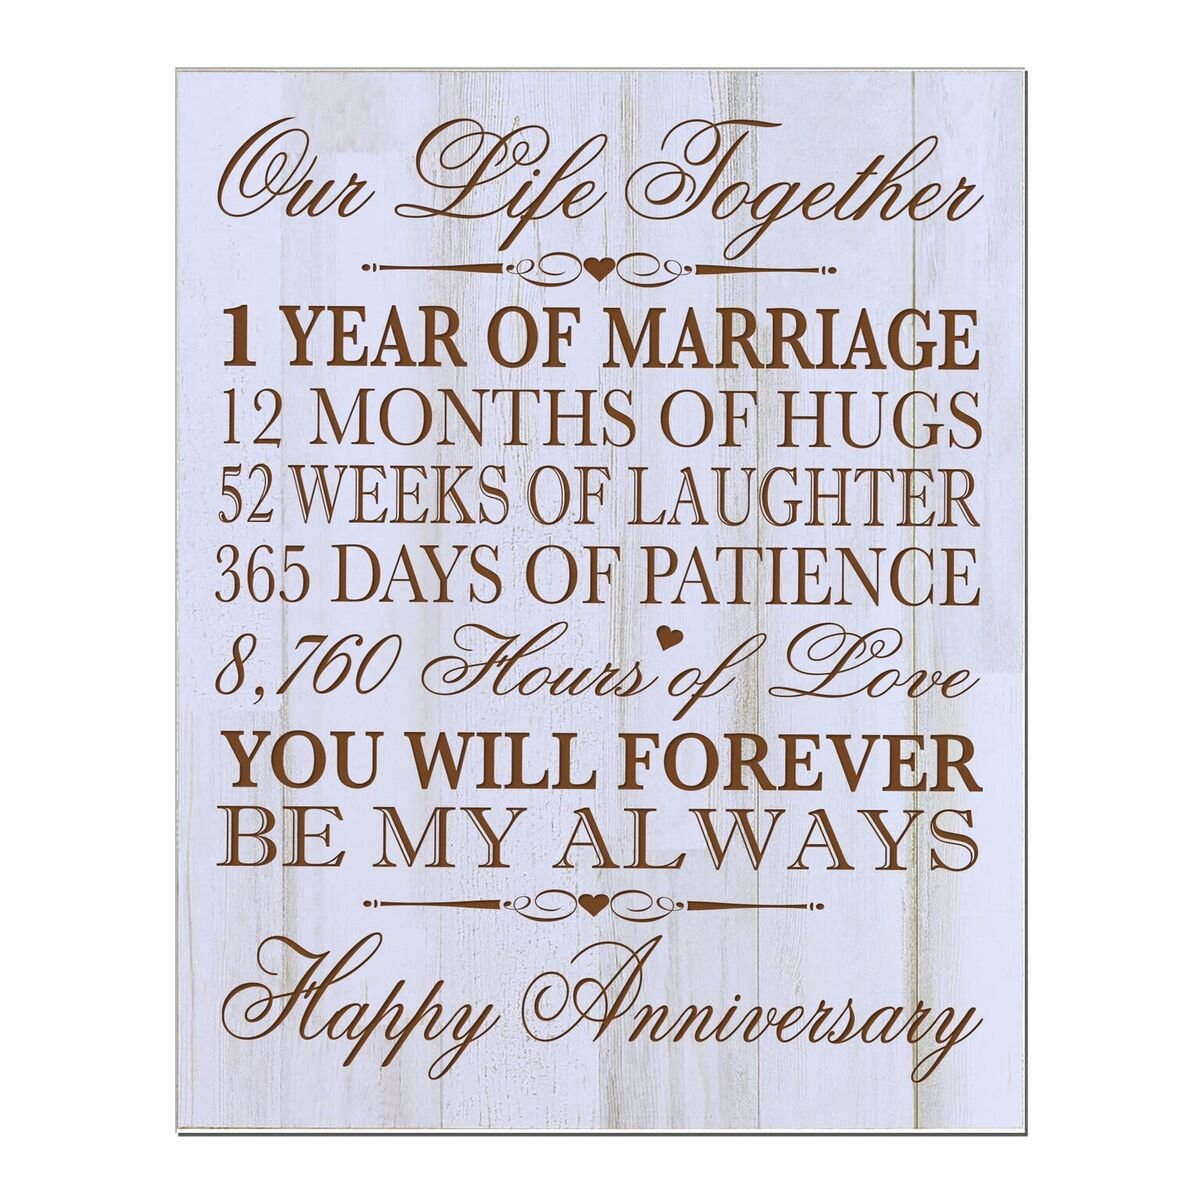 "LifeSong Milestones 1st Wedding Anniversary Wall Plaque Gifts for Couple, 1st for Her,1st Wedding for Him 12"" W X 15"" H Wall Plaque By (Distressed Wood)"